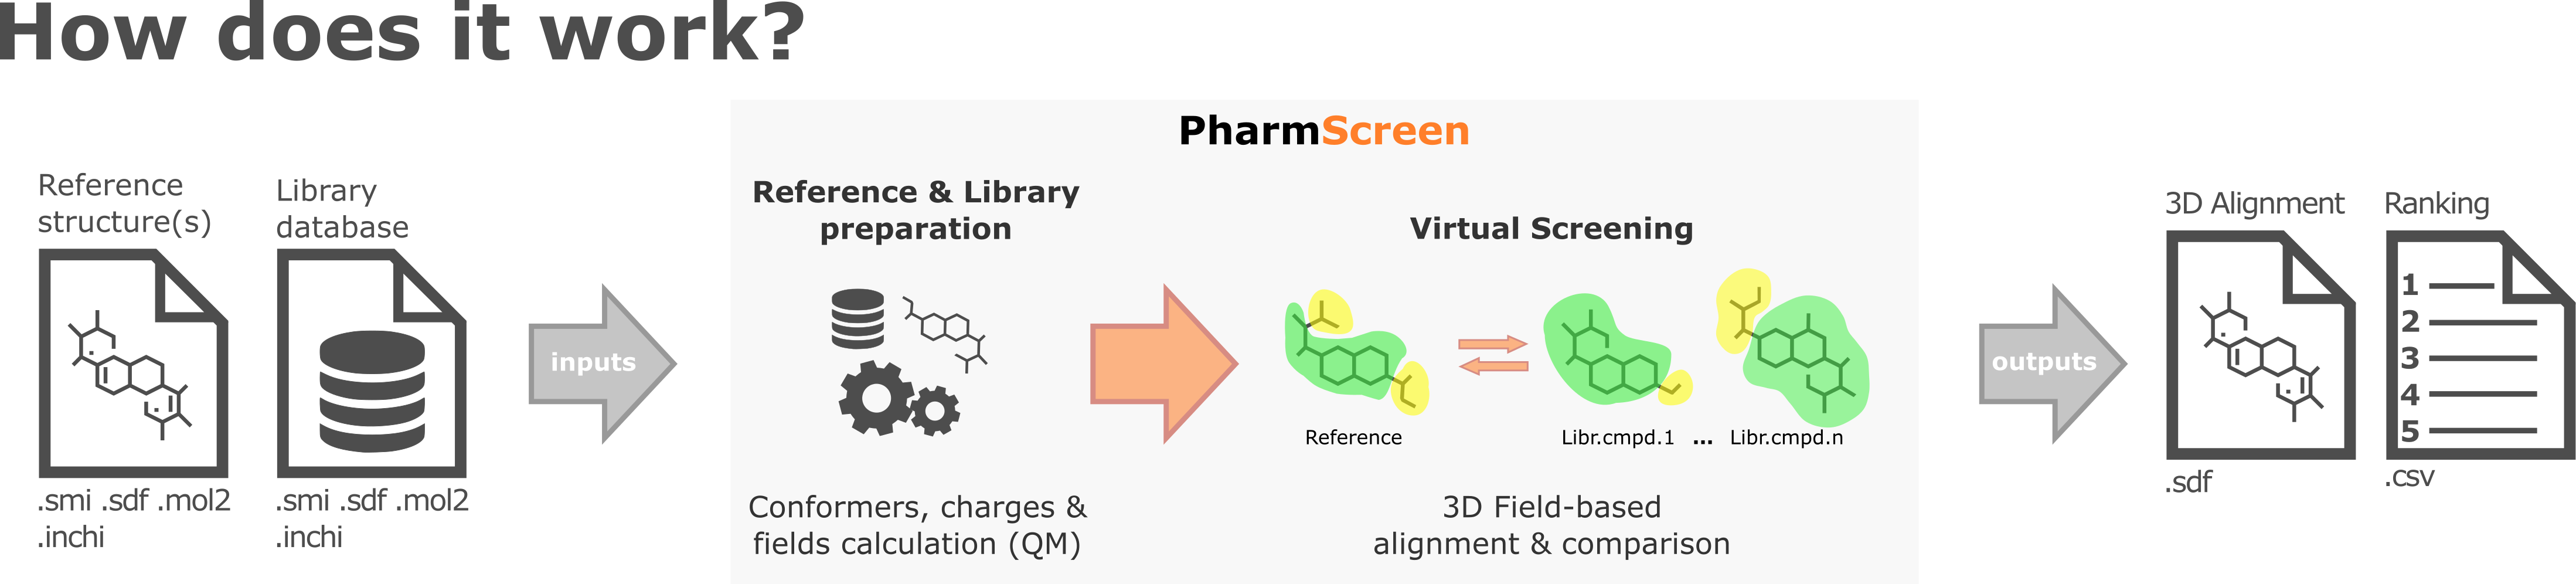 PharmScreen workflow